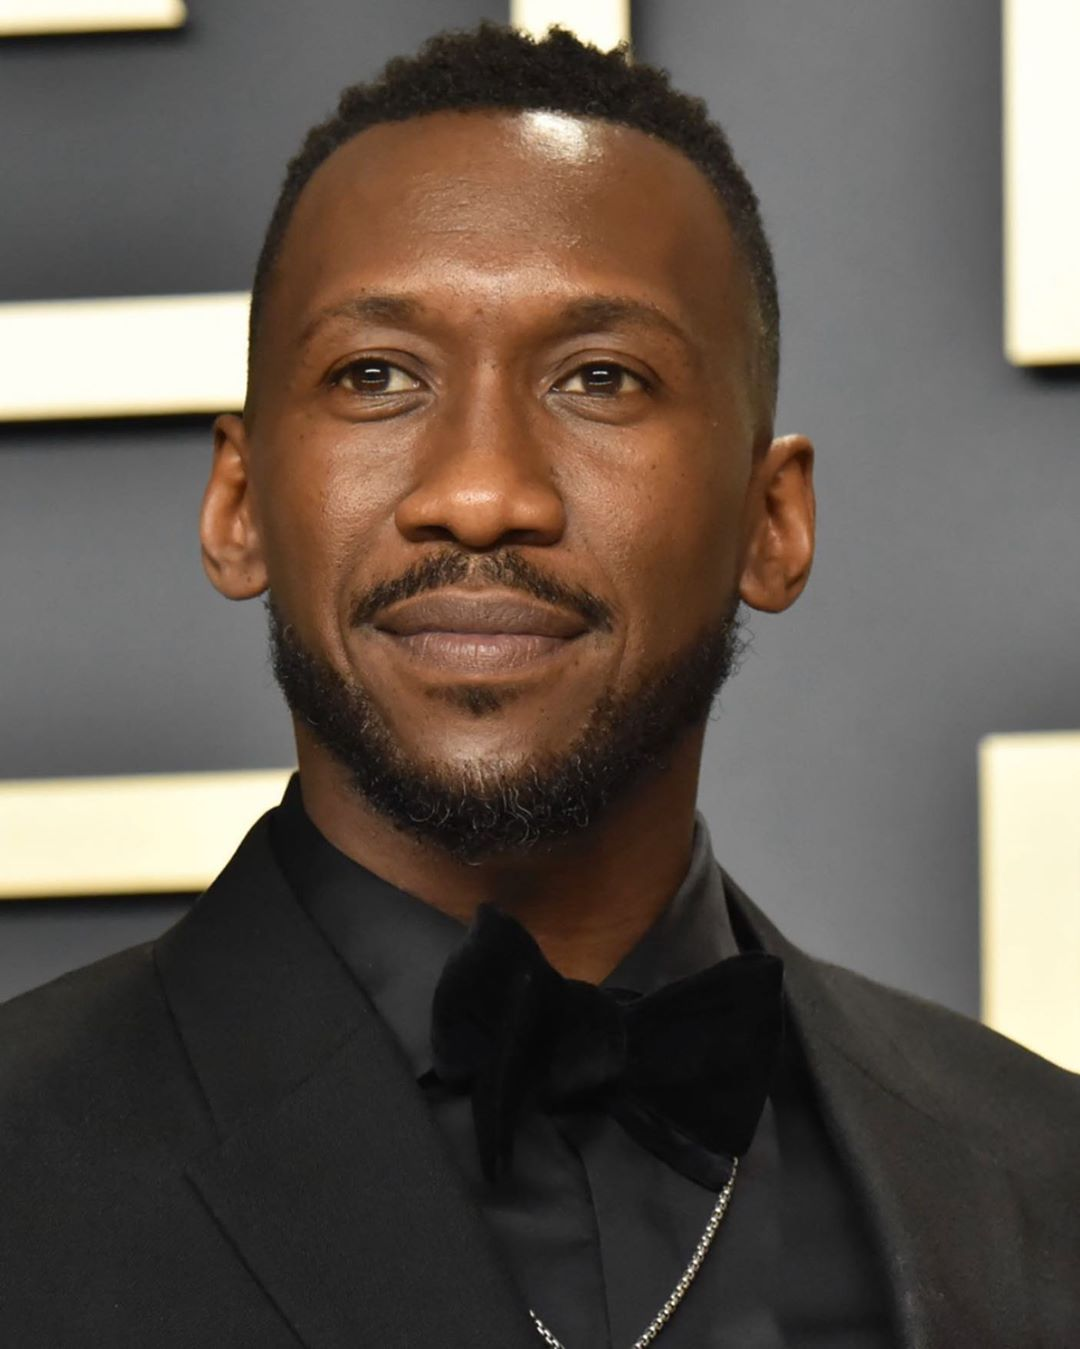 Mahershala Ali at the Oscars 2020